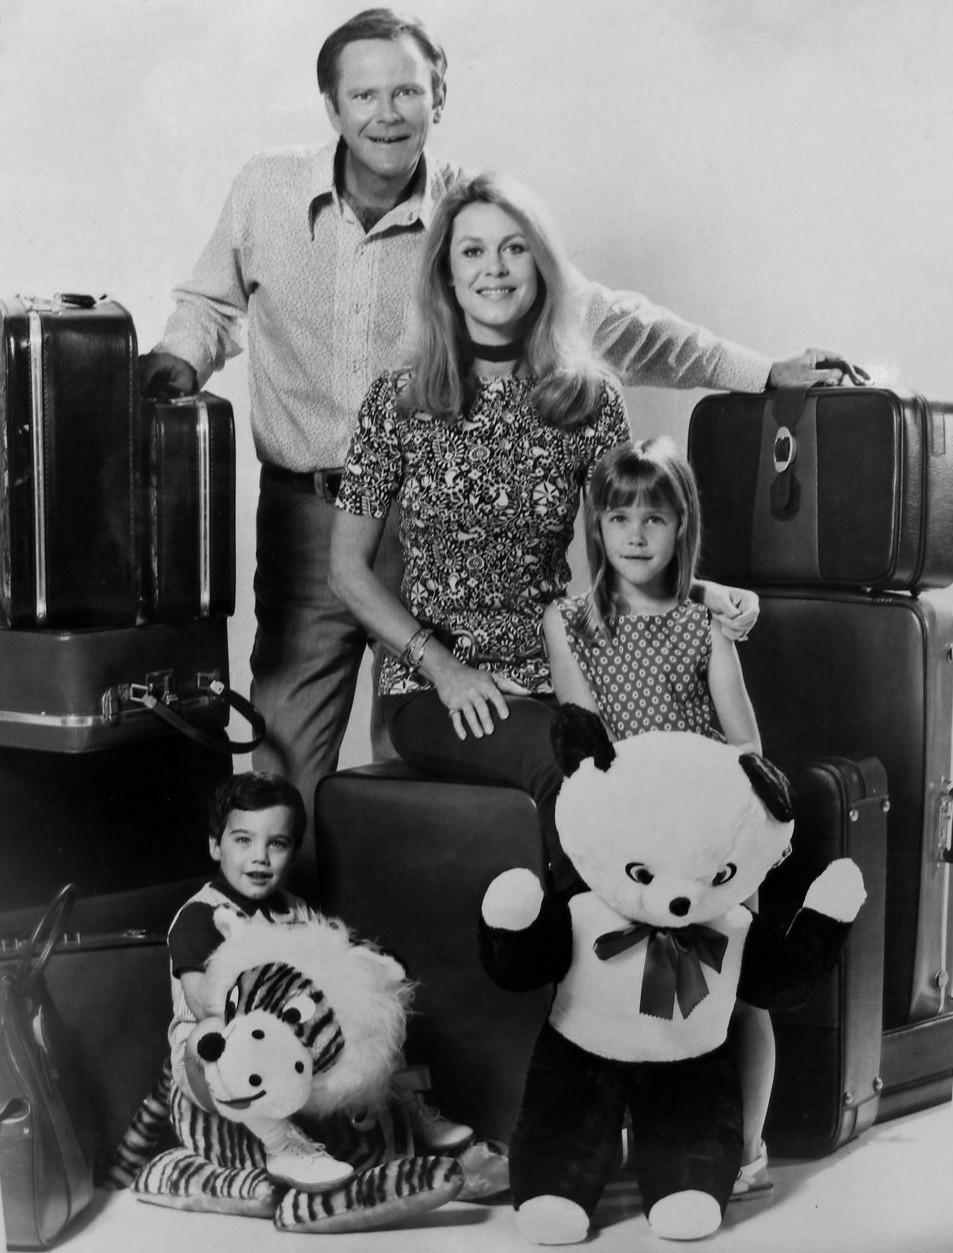 Bewitched cast photo of the Stephens family.